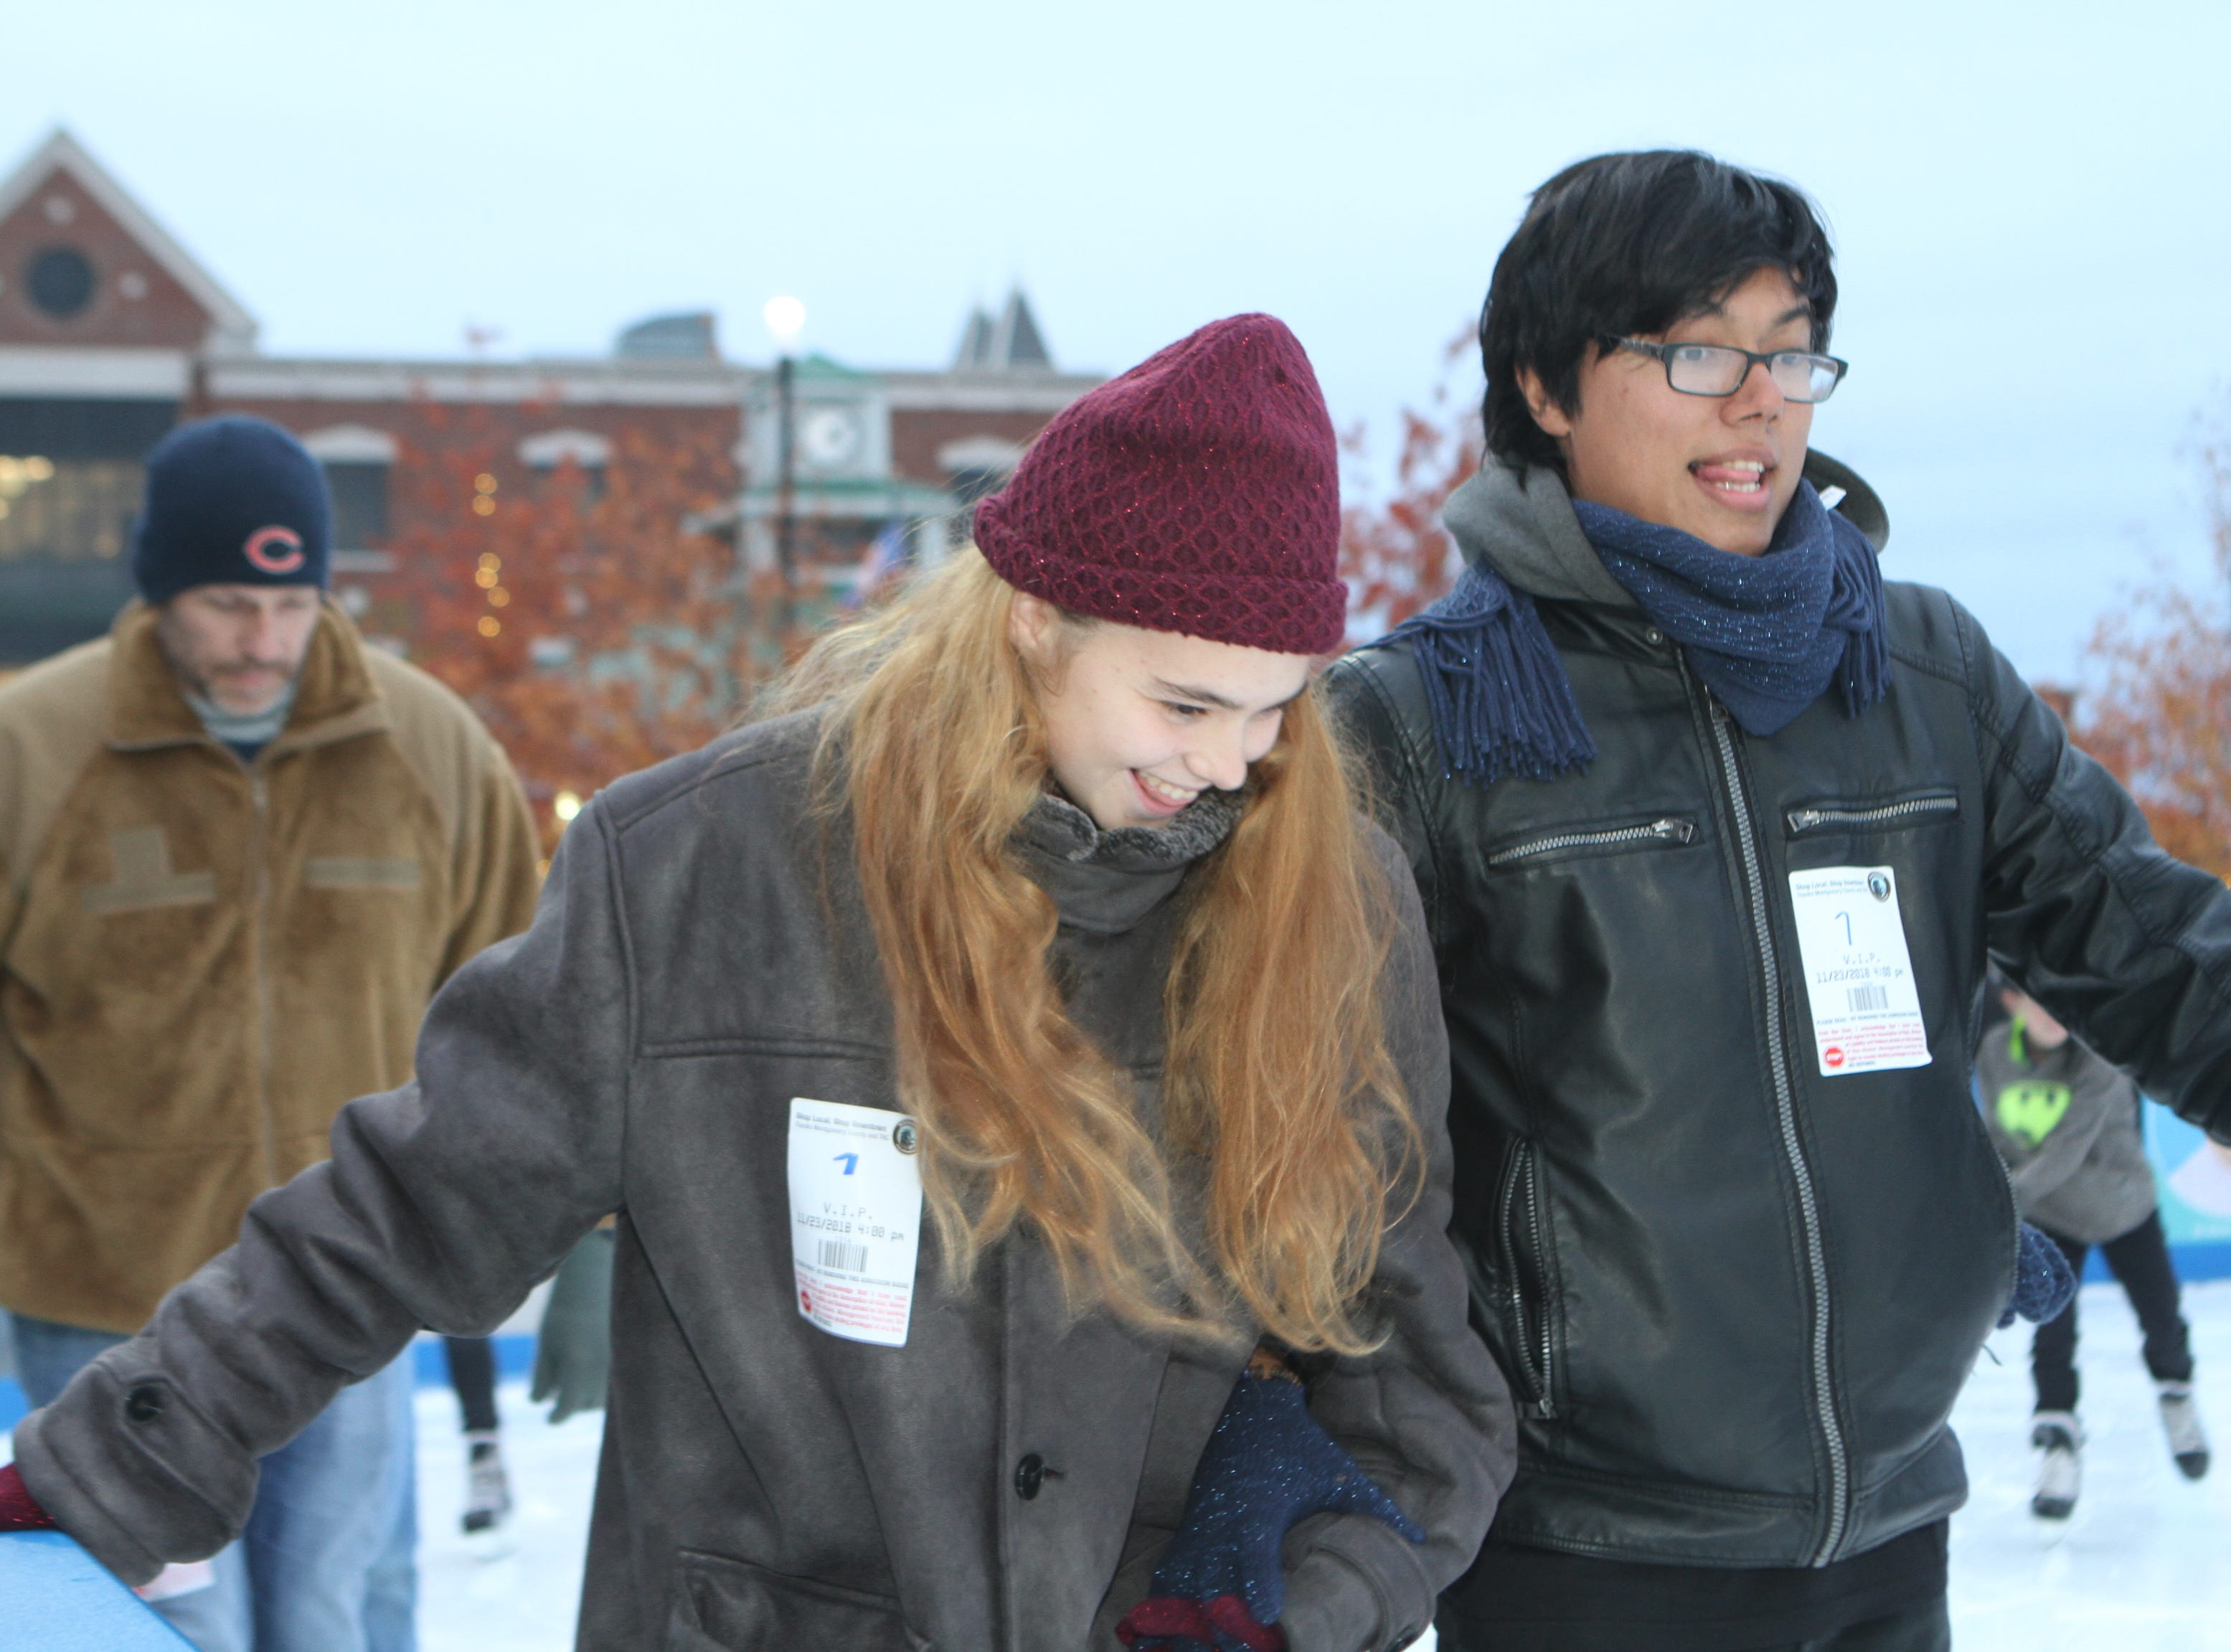 Katelyn Applegate and Yothman Leiva at the Downtown Commons Winter Ice Rink opening on Friday, Nov. 23, 2018.